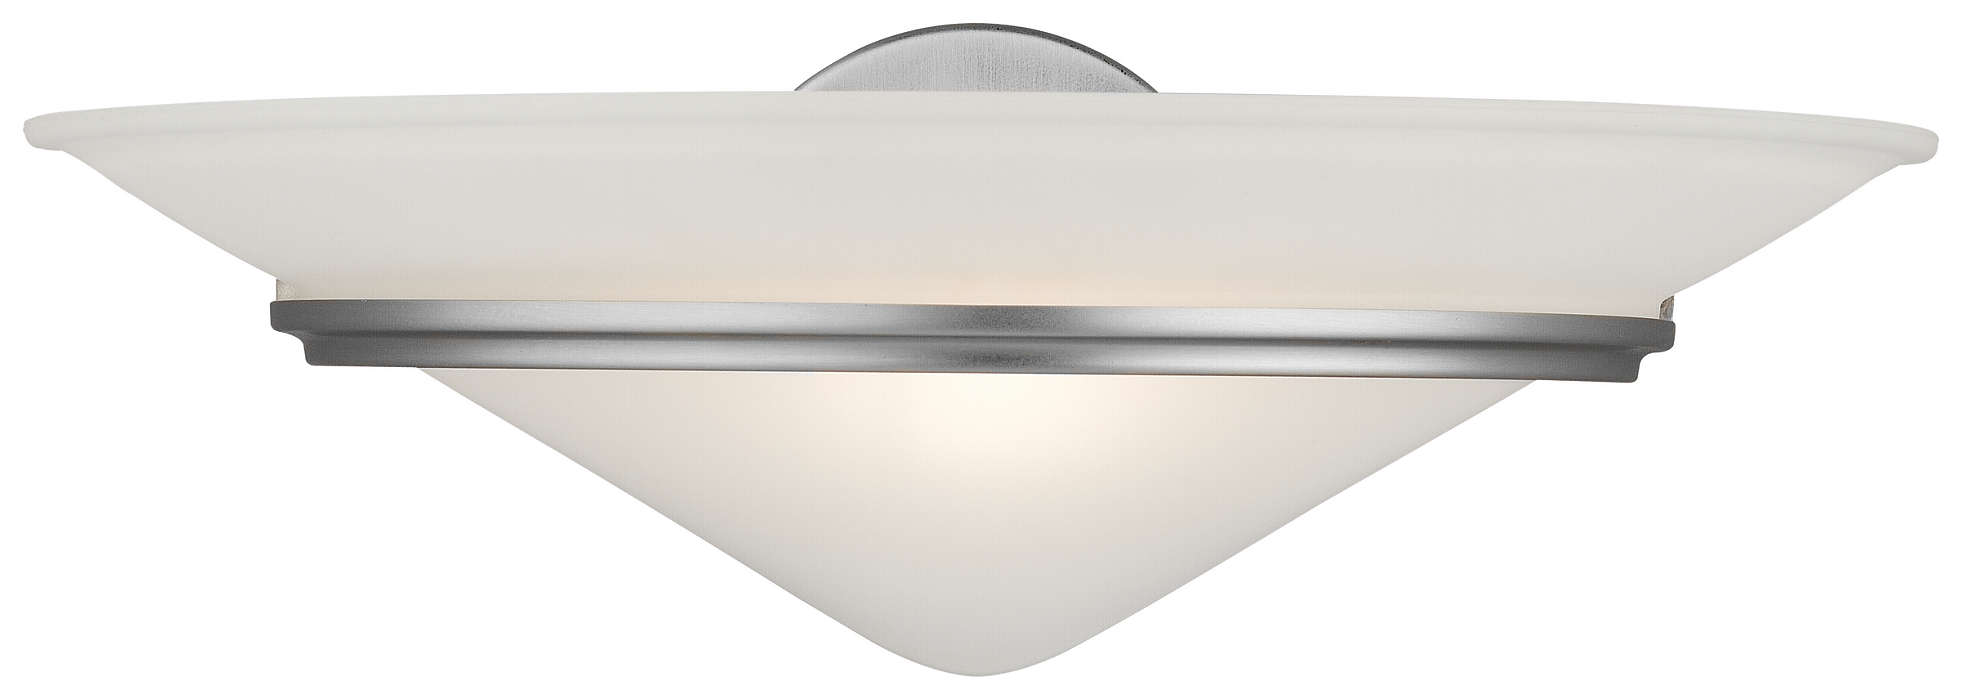 Regatta II 1-light Wall in Satin Nickel finish